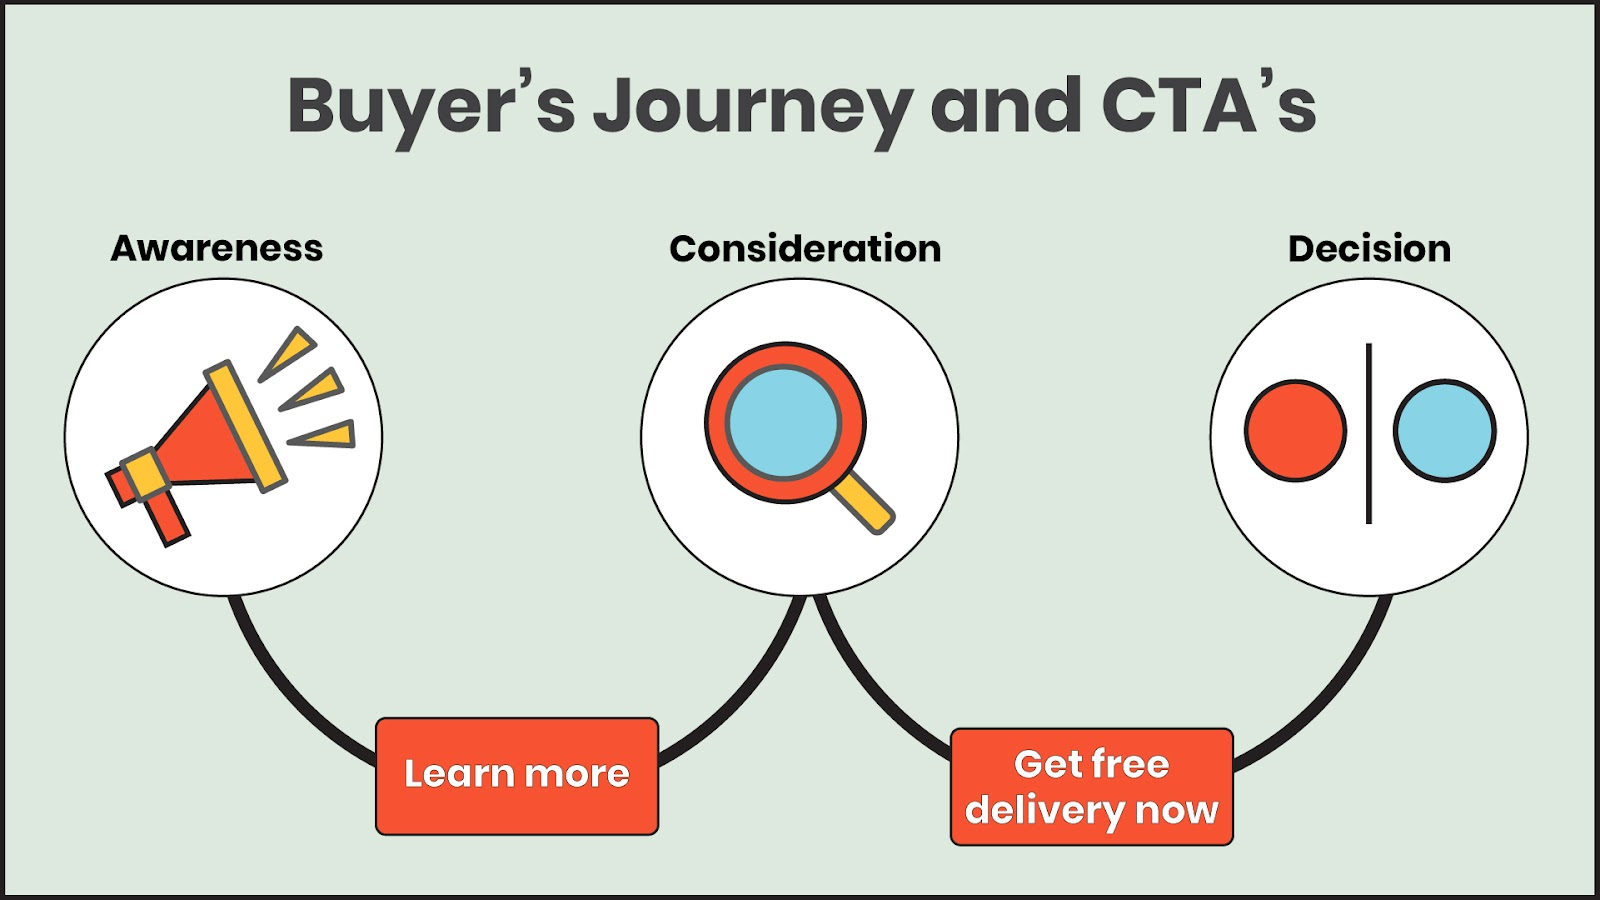 The right CTAs make the buyer's journey transition smoothly